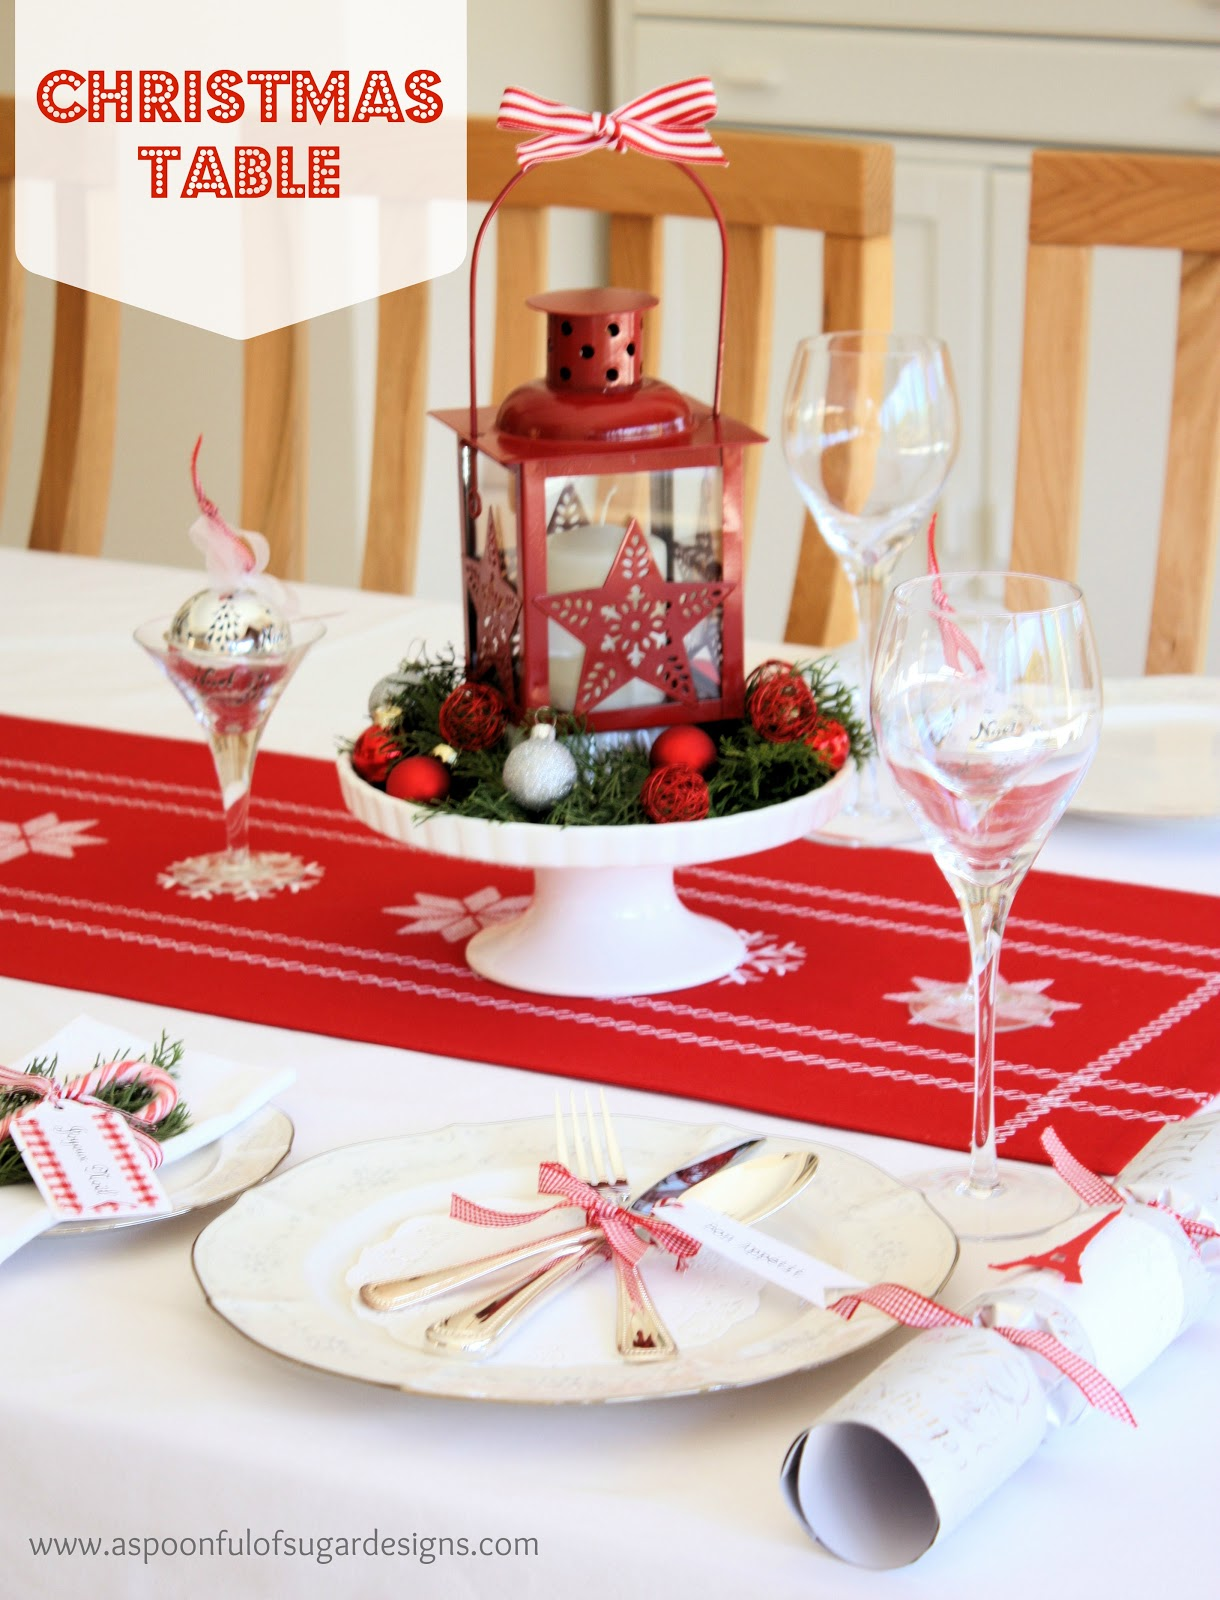 Our christmas table a spoonful of sugar - Christmas table setting ideas ...